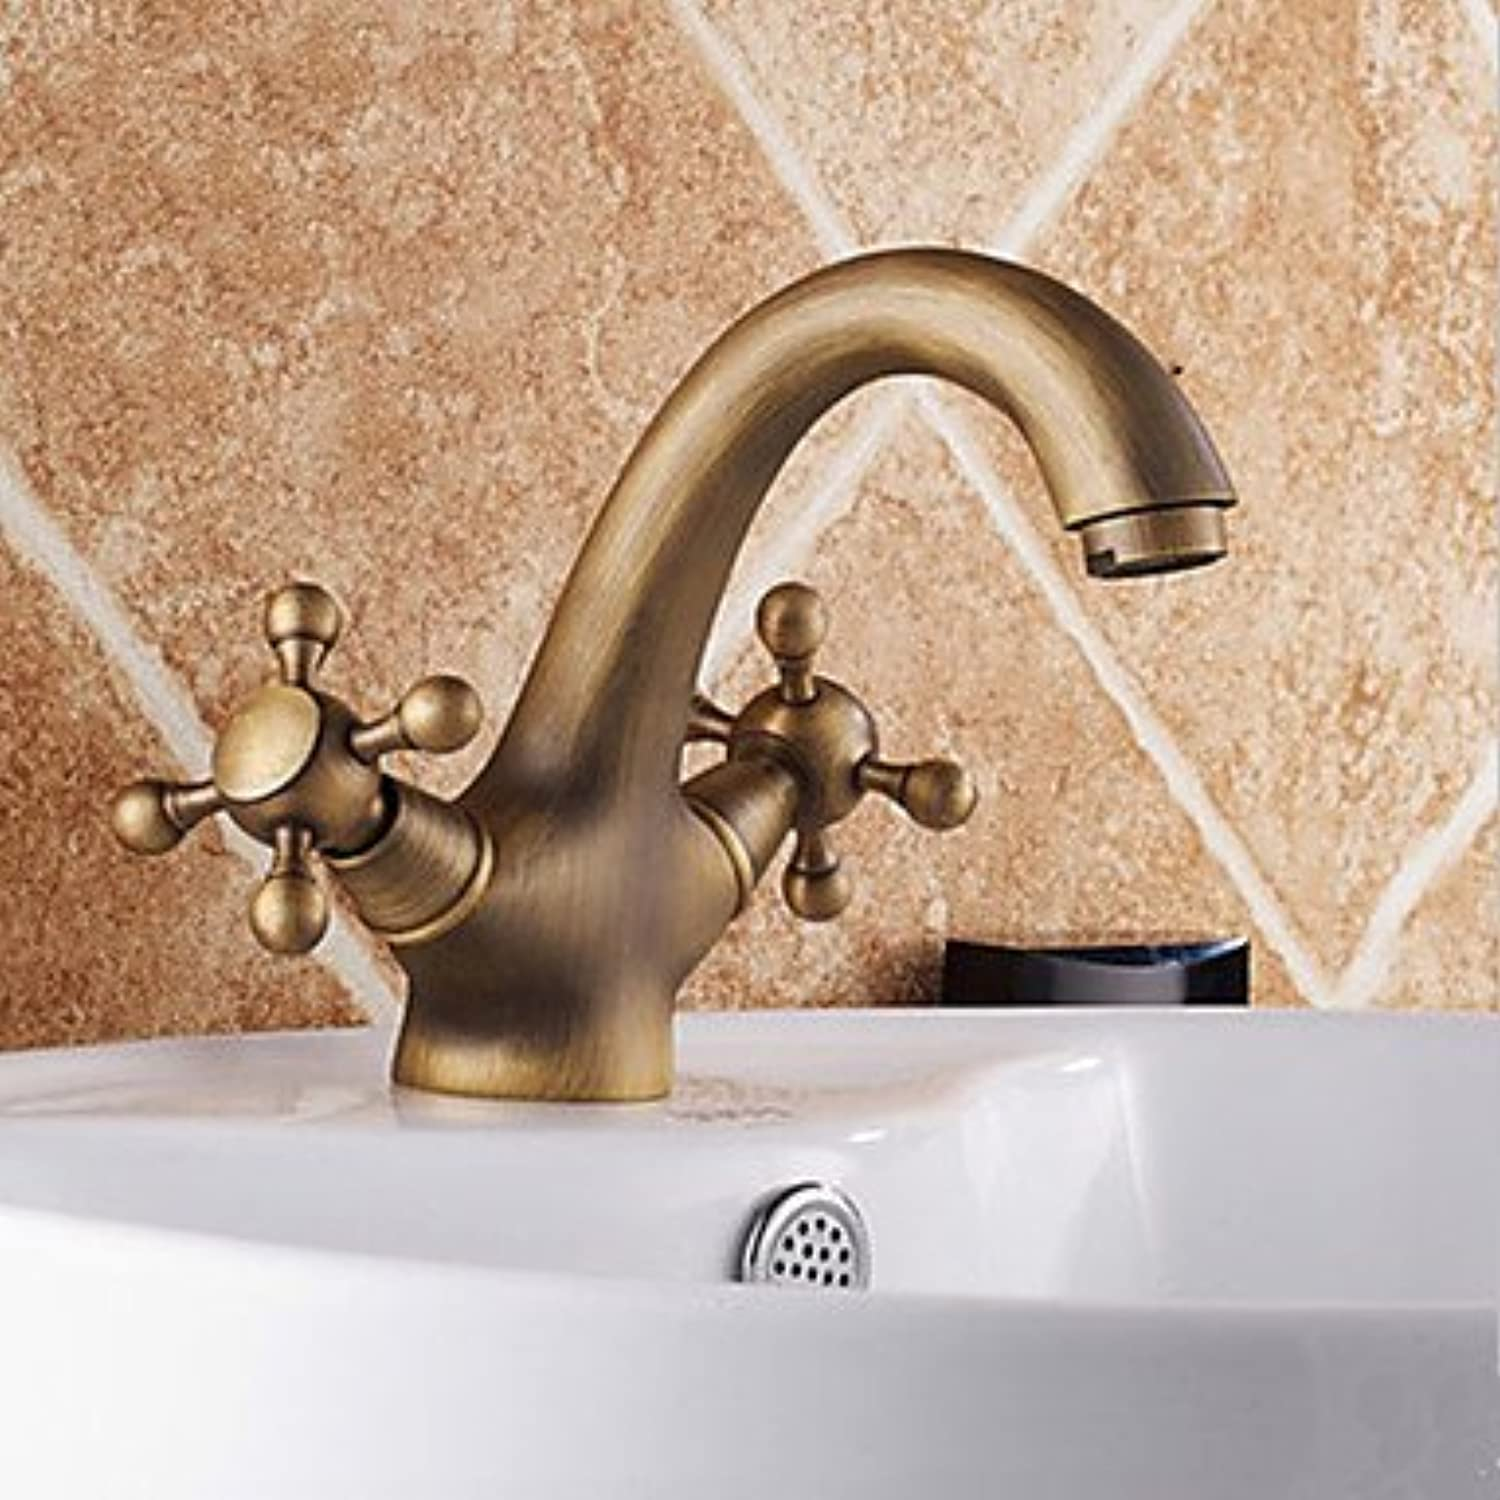 AA Faucet£? Antique inspired bathroom sink faucet